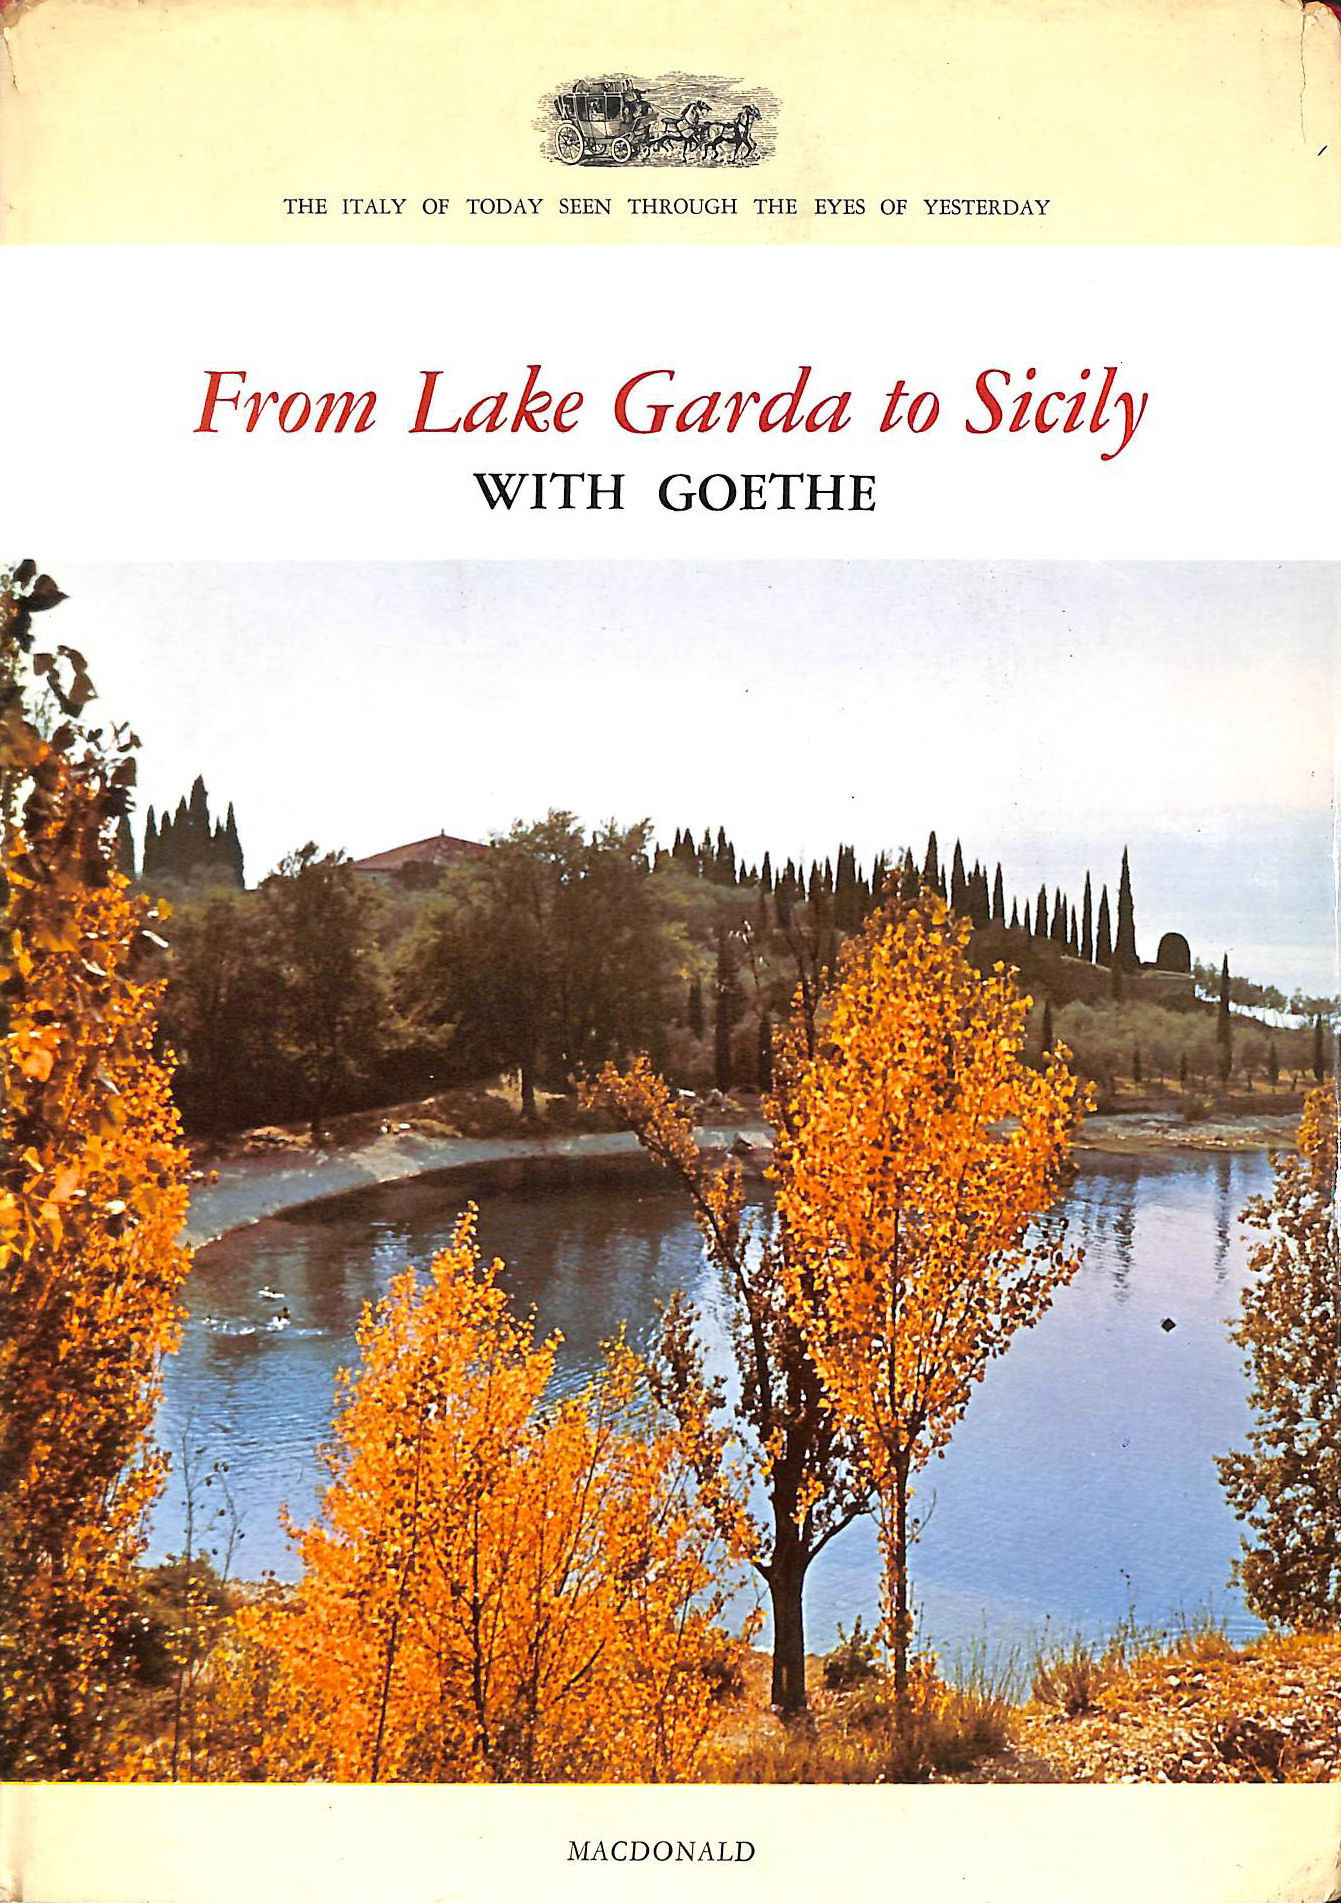 Image for From Lake Garda to Sicily with Goethe (The Italy of today seen through the eyes of yesterday)